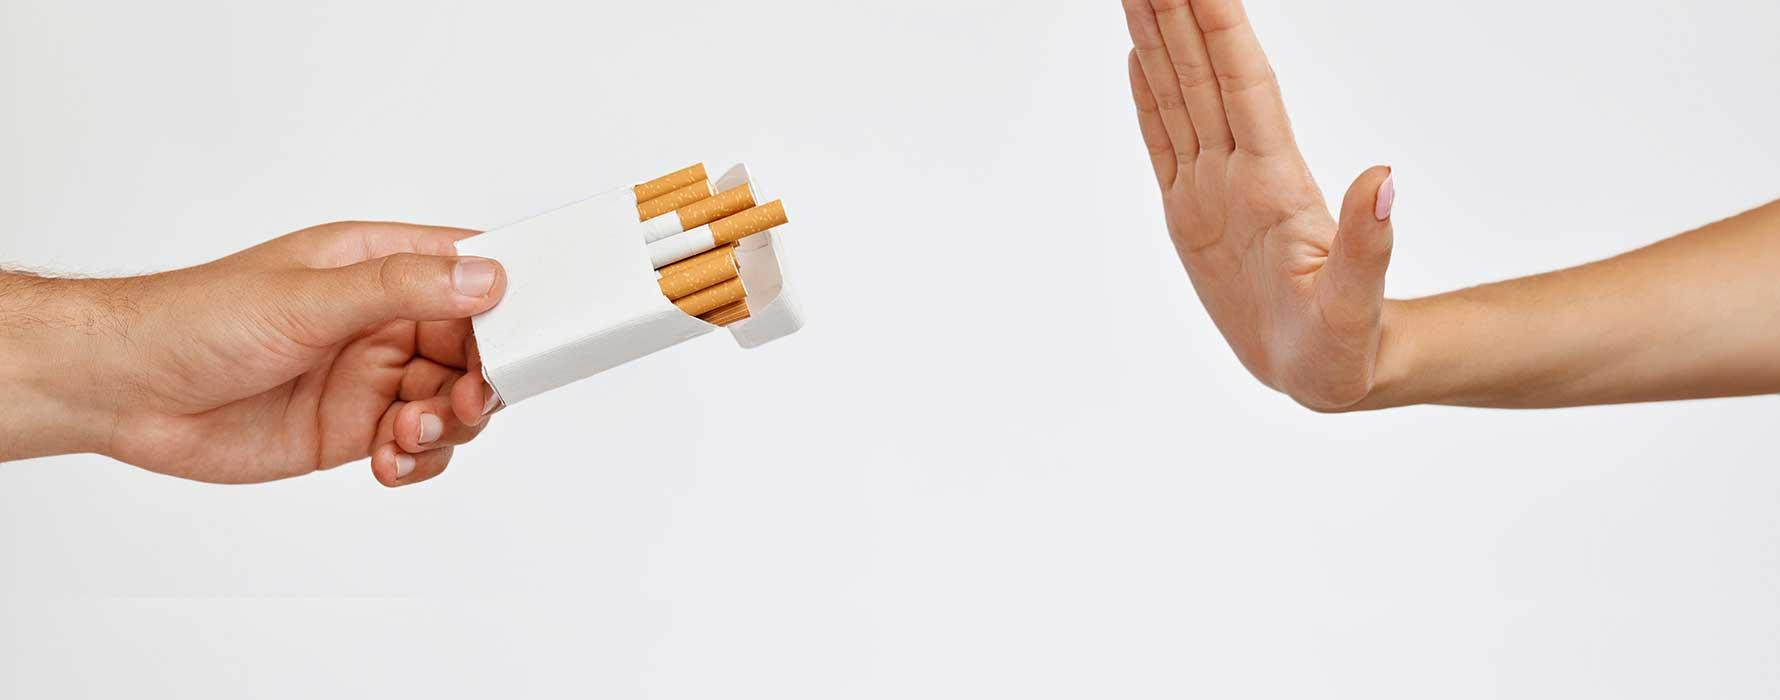 Hand offering cigarettes and another rejecting them